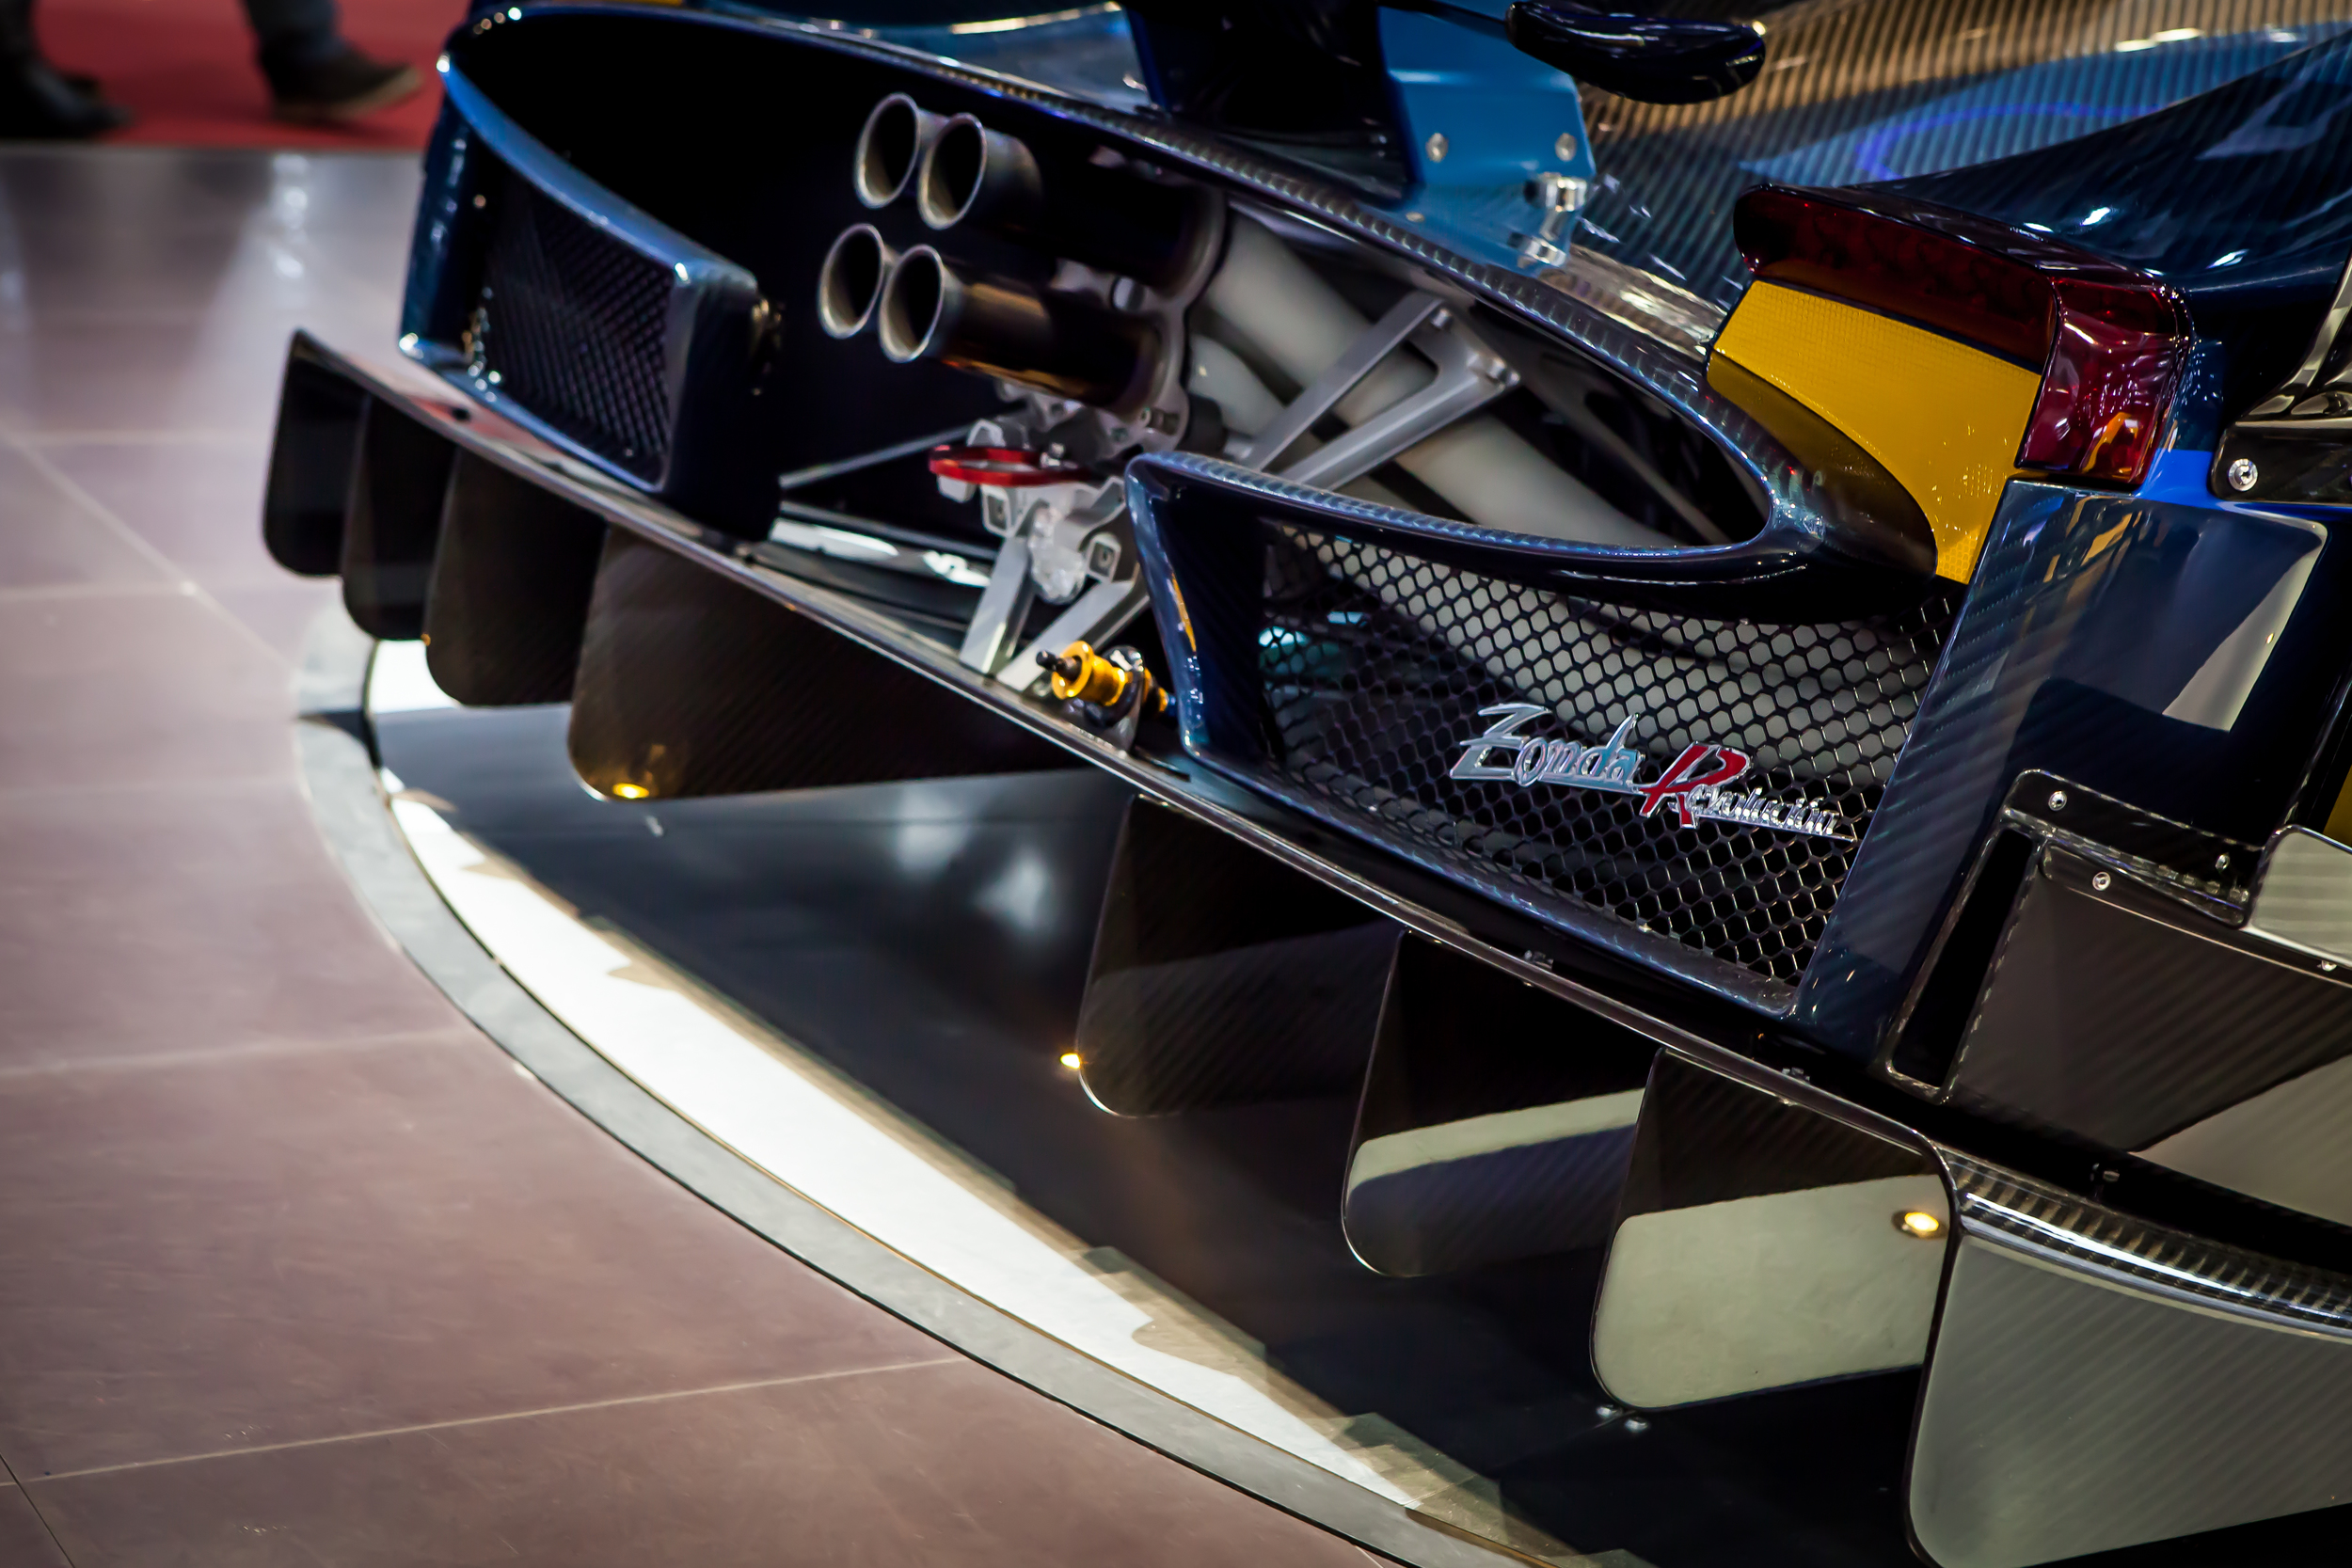 Zonda from the rear. Geneva Motor Show 2014